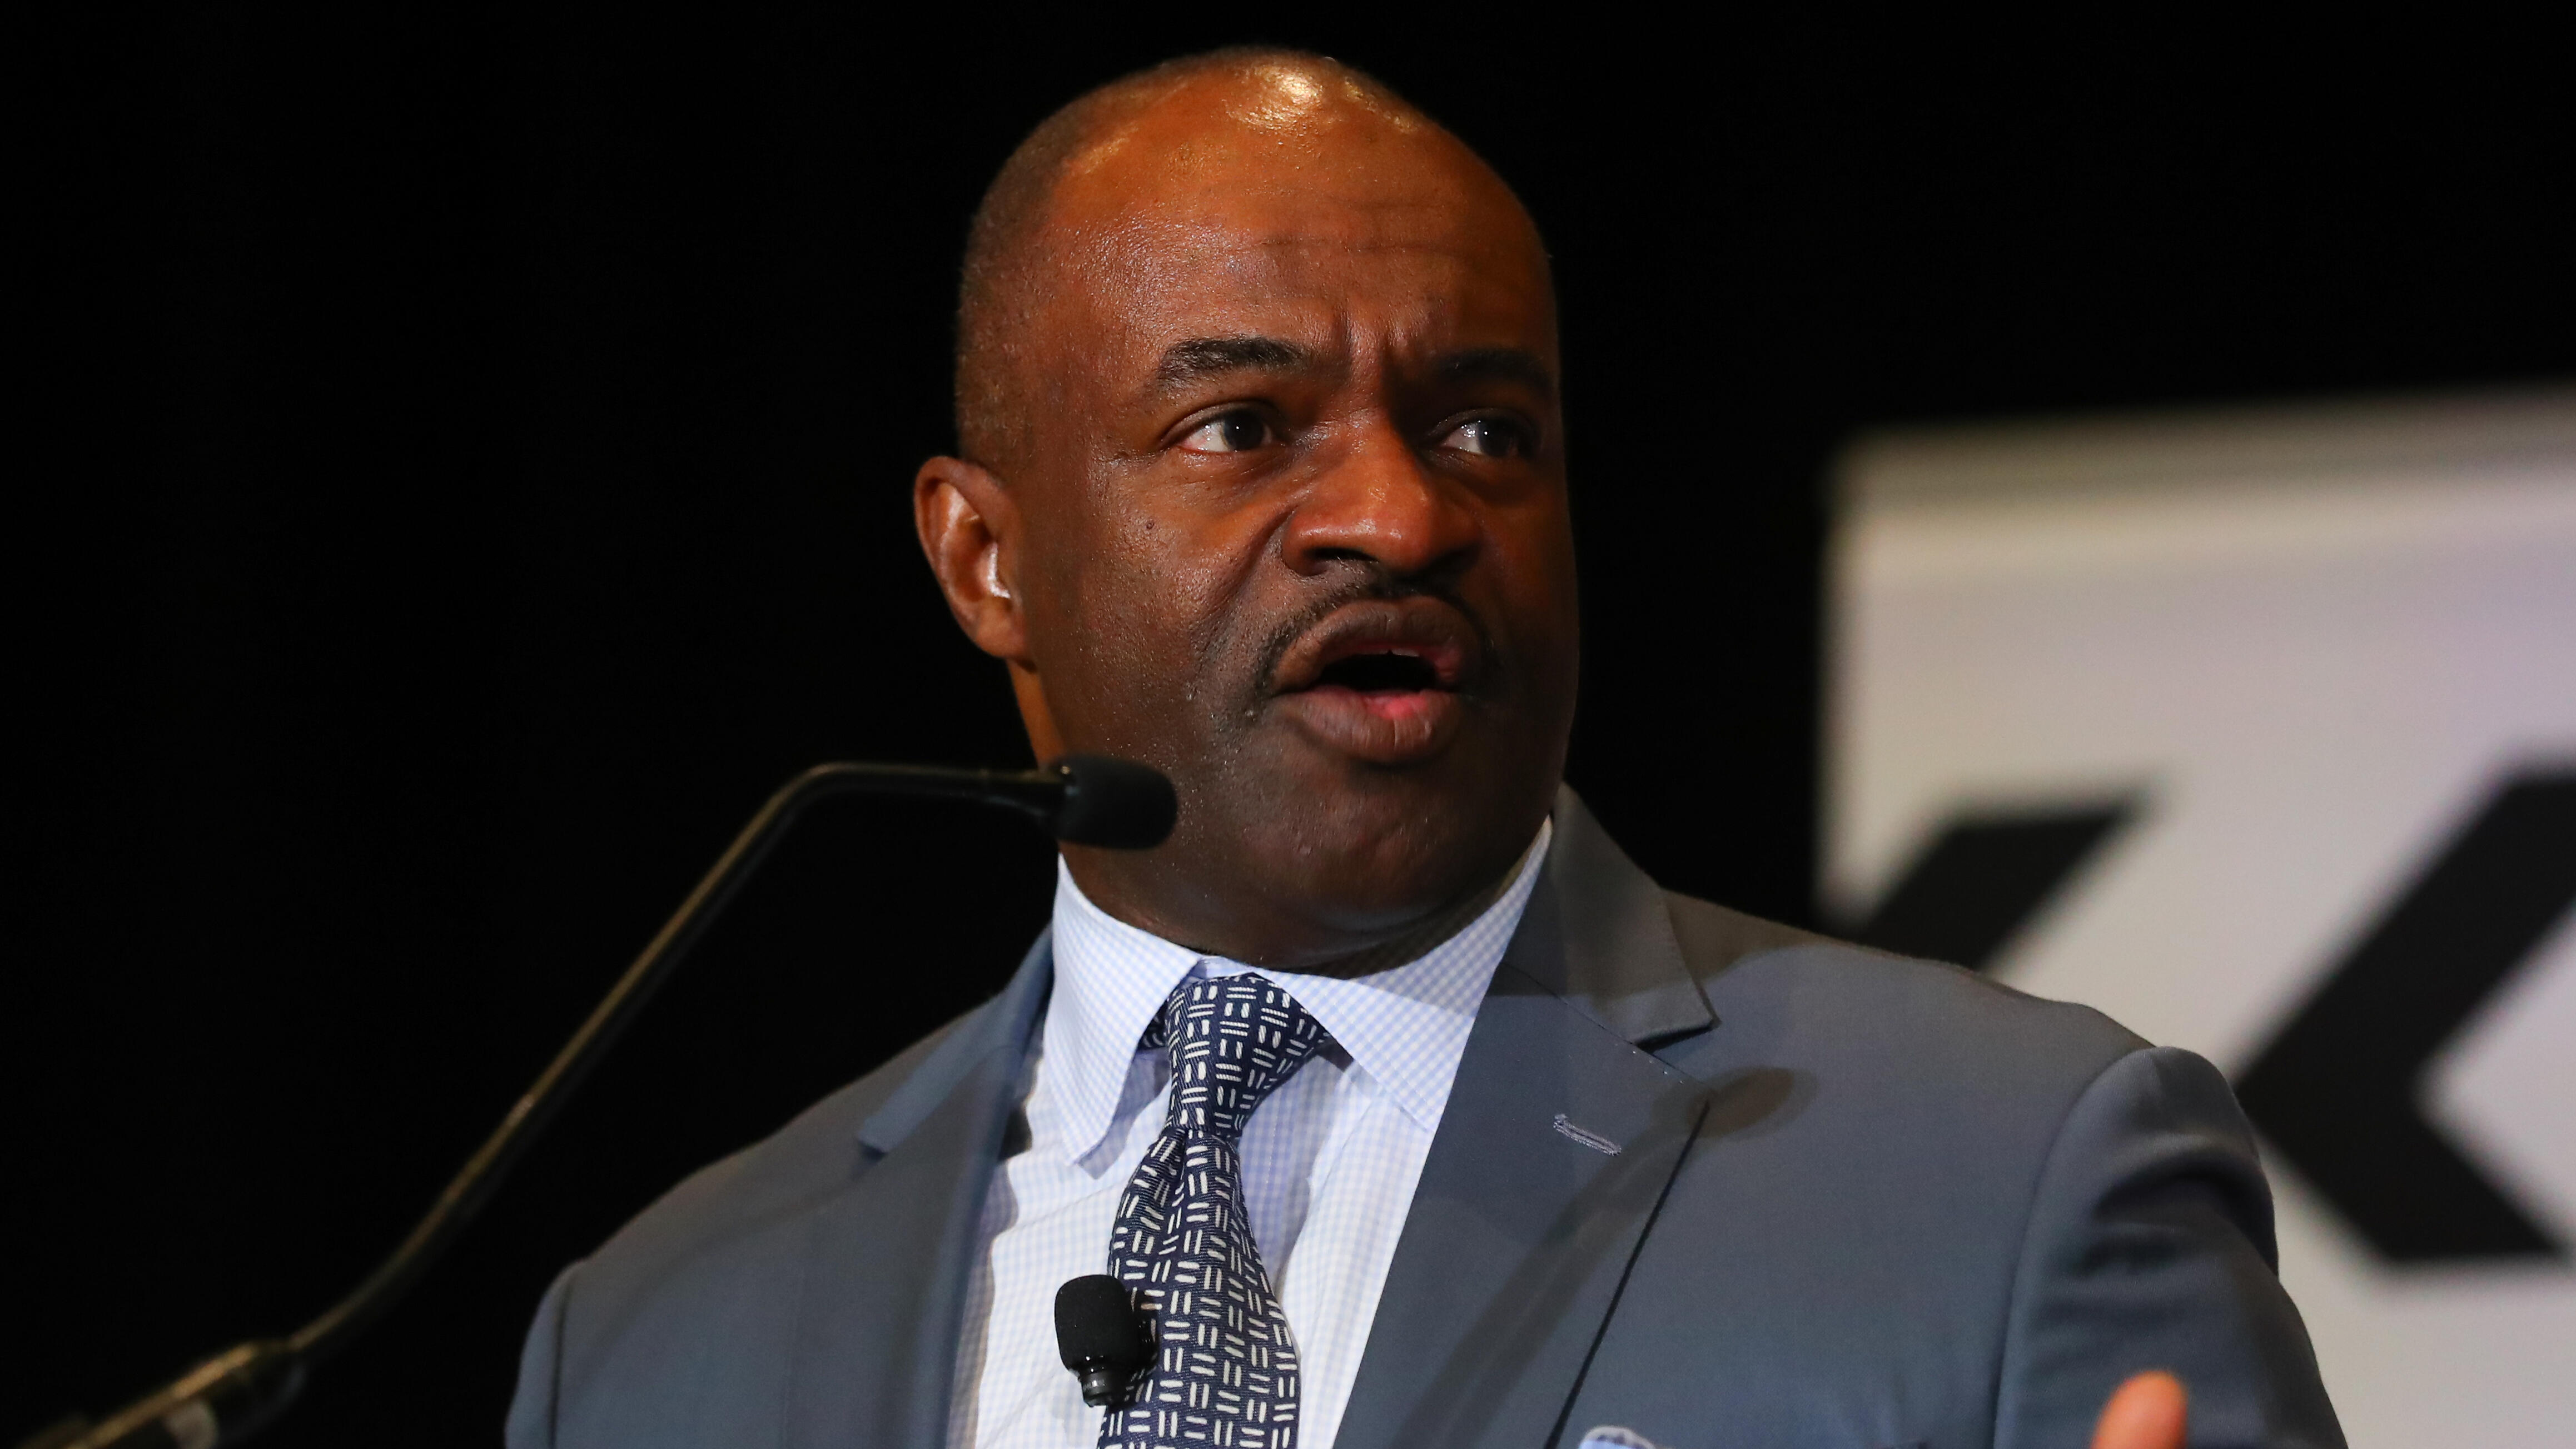 NFLPA Executive Director Says He's Confident Players Will Approve CBA | KFI AM 640